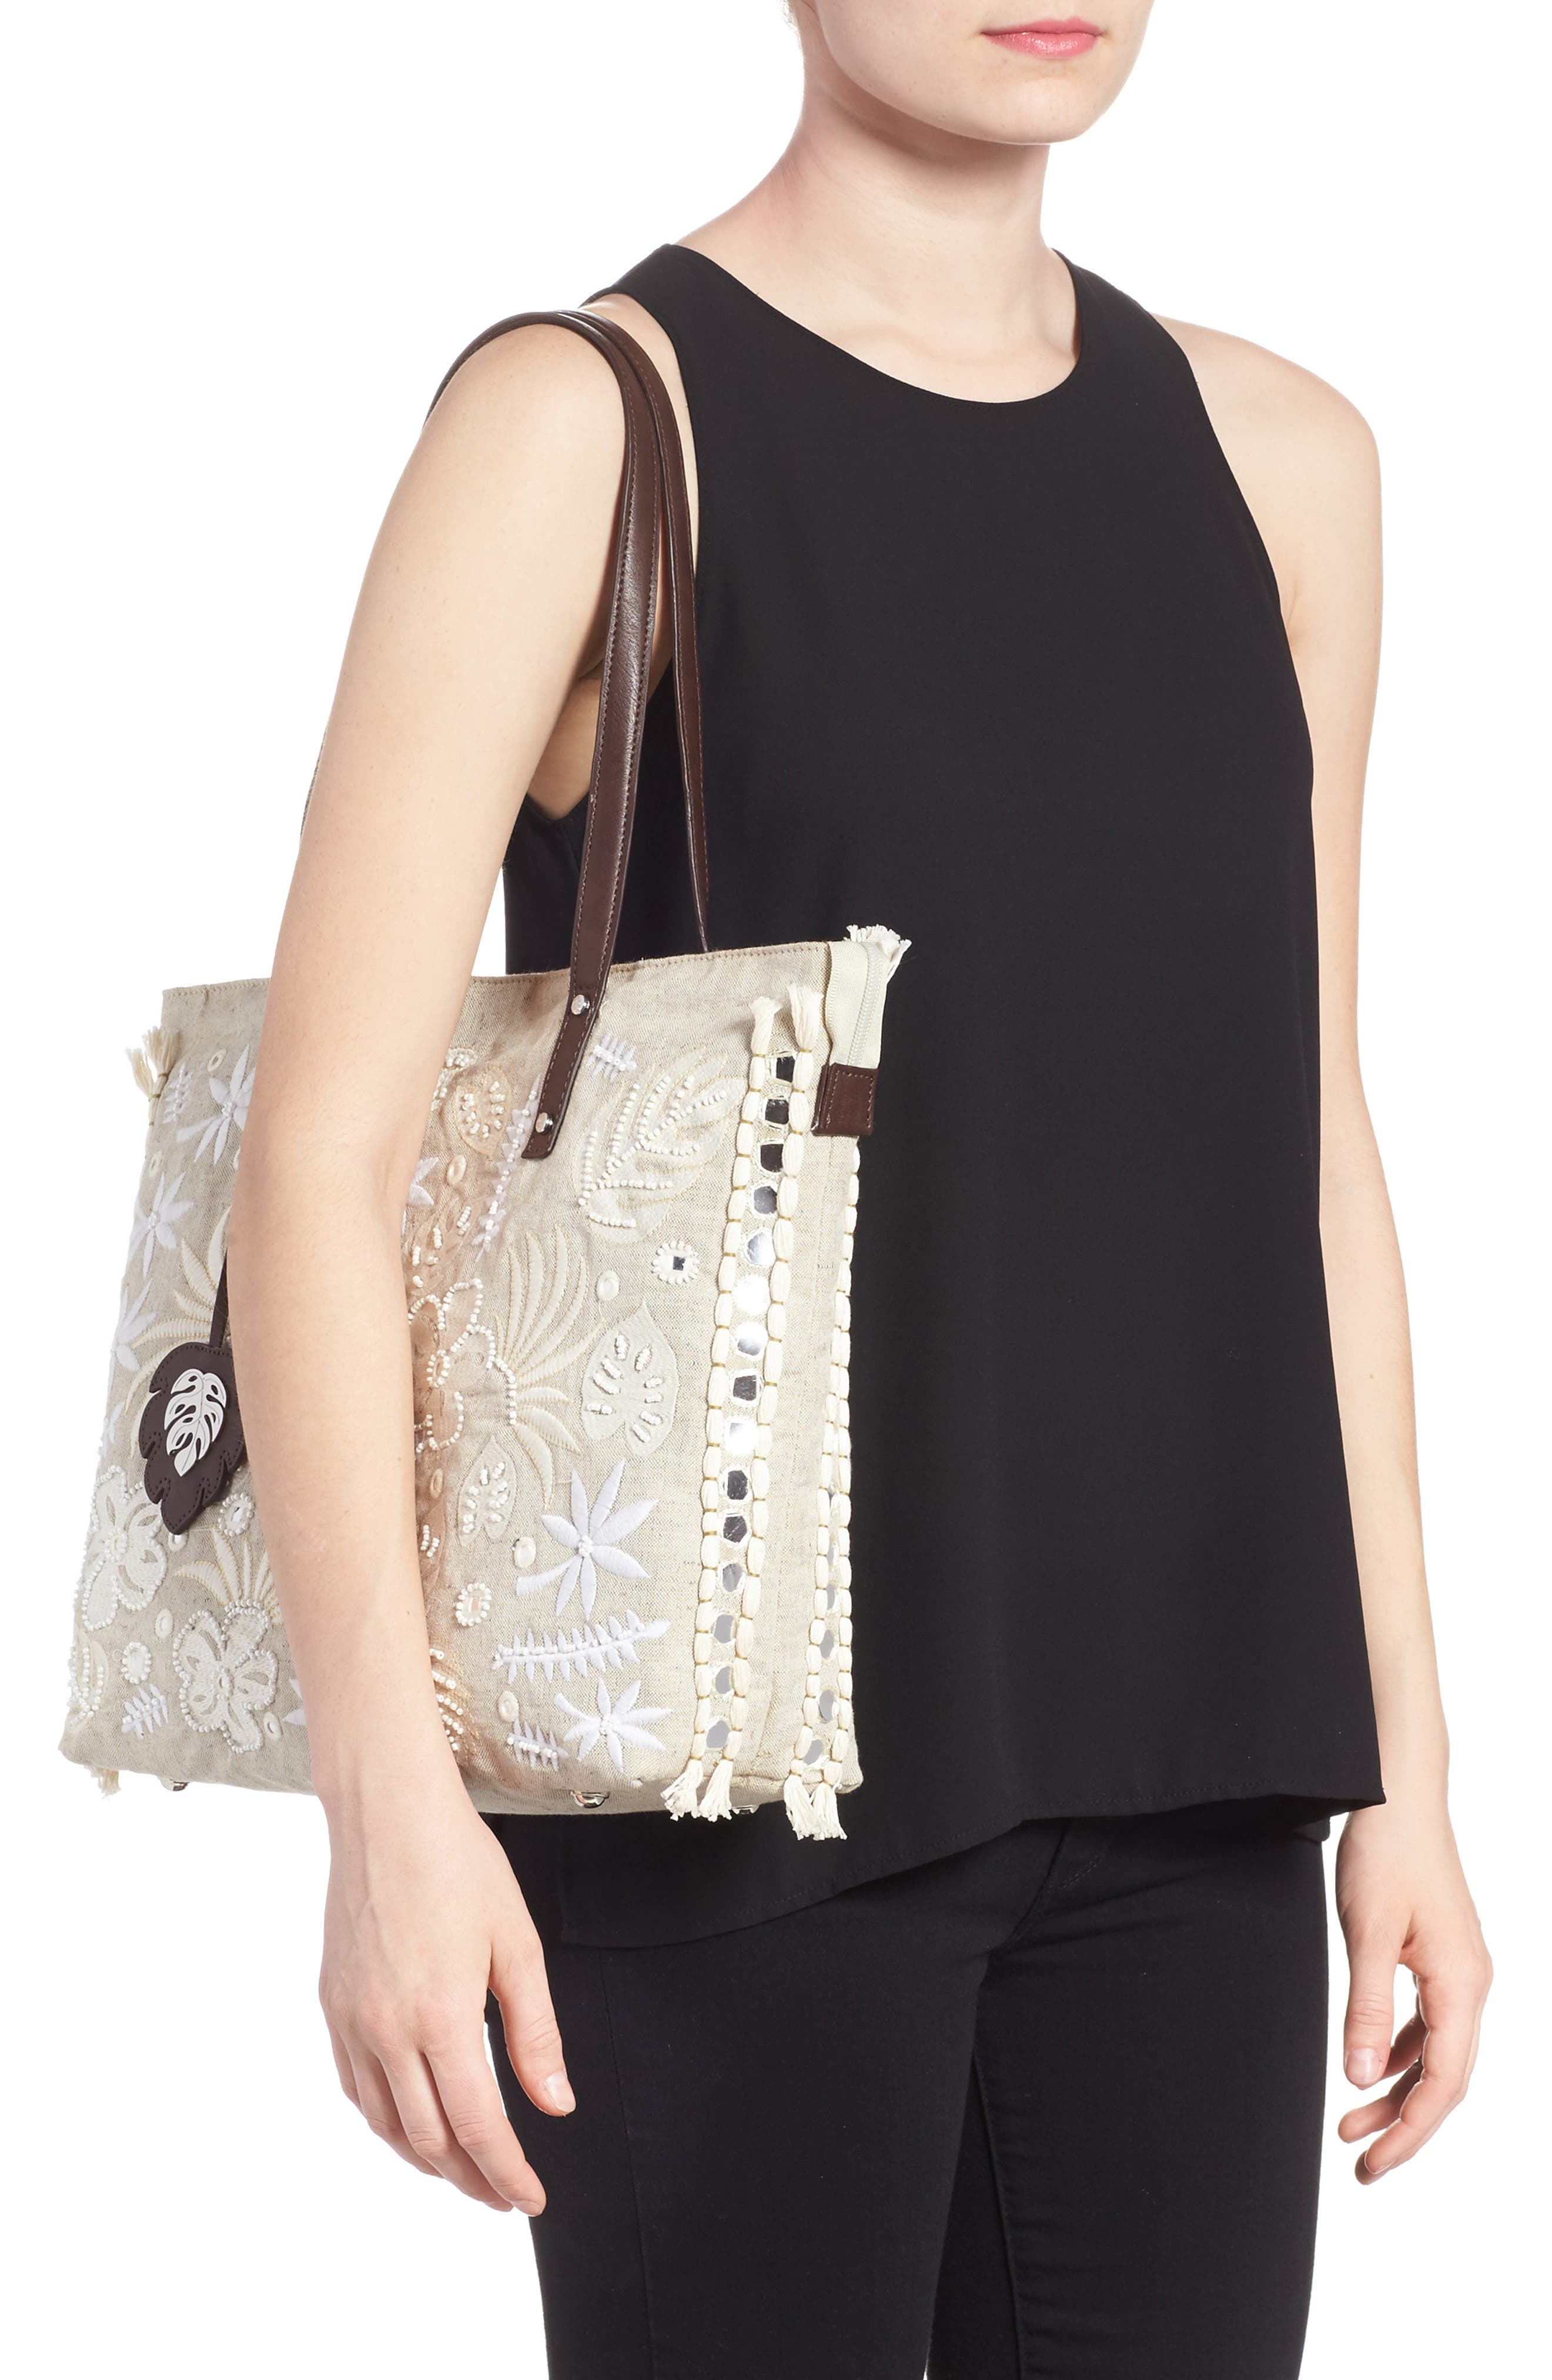 Belize Embroidered Canvas Tote,                             Alternate thumbnail 2, color,                             250